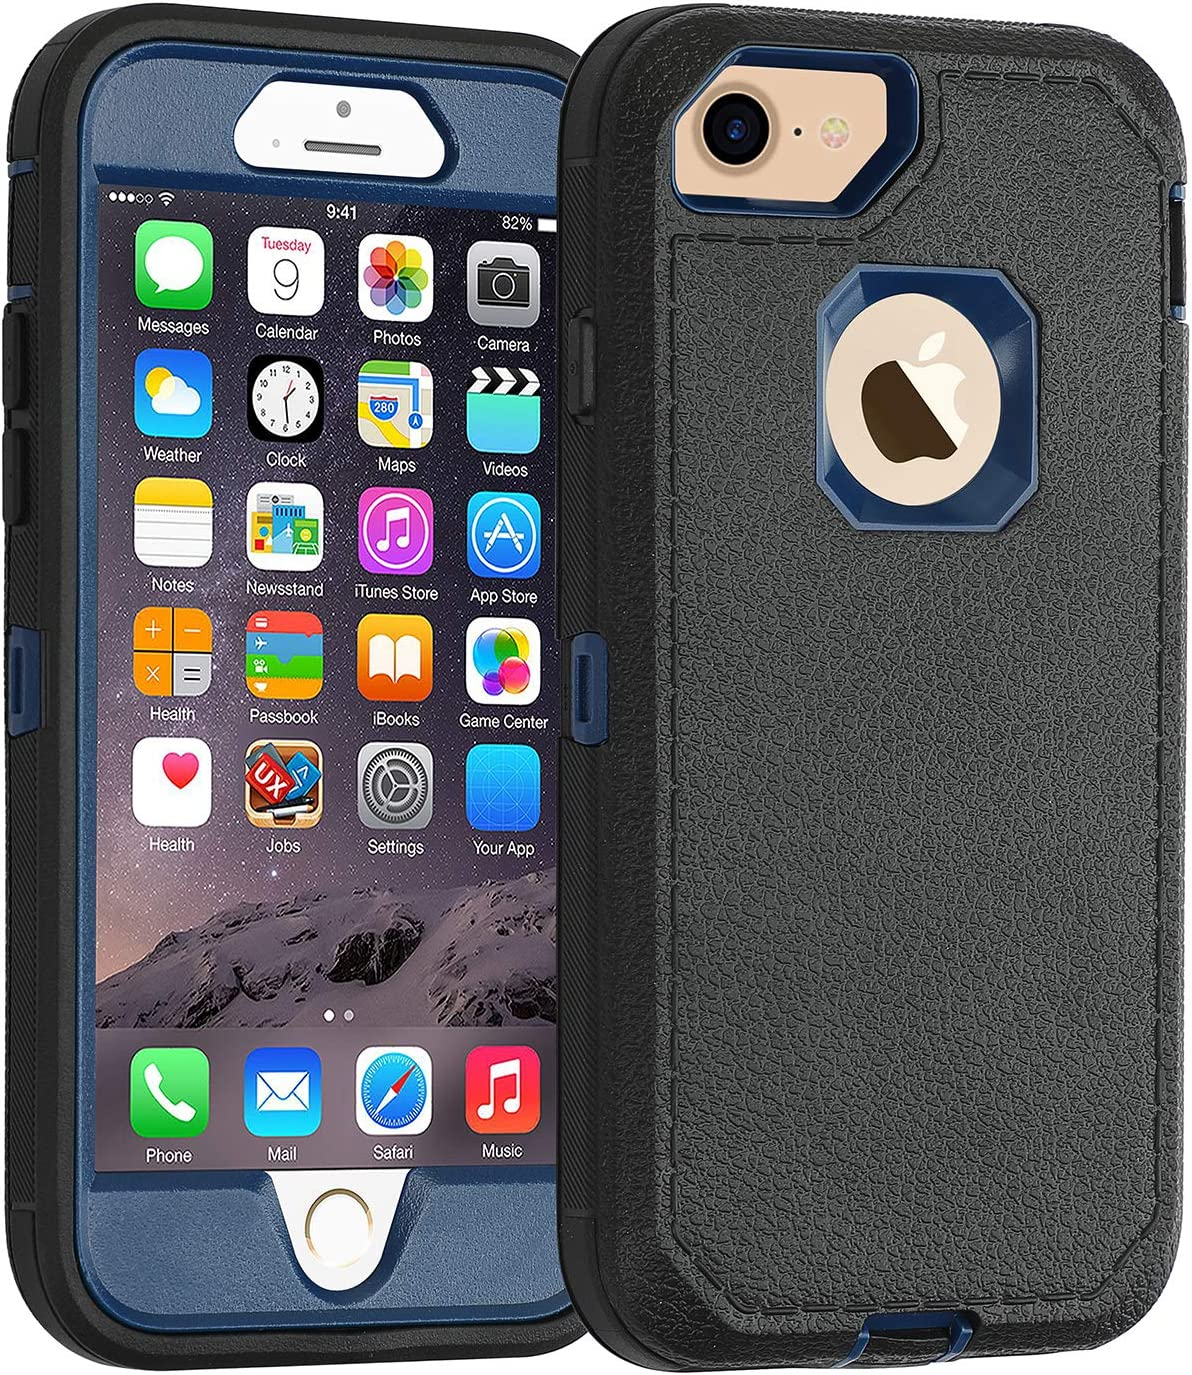 Co-Goldguard Case iPhone 7 Heavy Duty iPhone 8 Case Durable 3 in 1 Hard Cover Dust-Proof Shockproof Drop-Proof Scratch-Resistant Shell (Black/Blue)